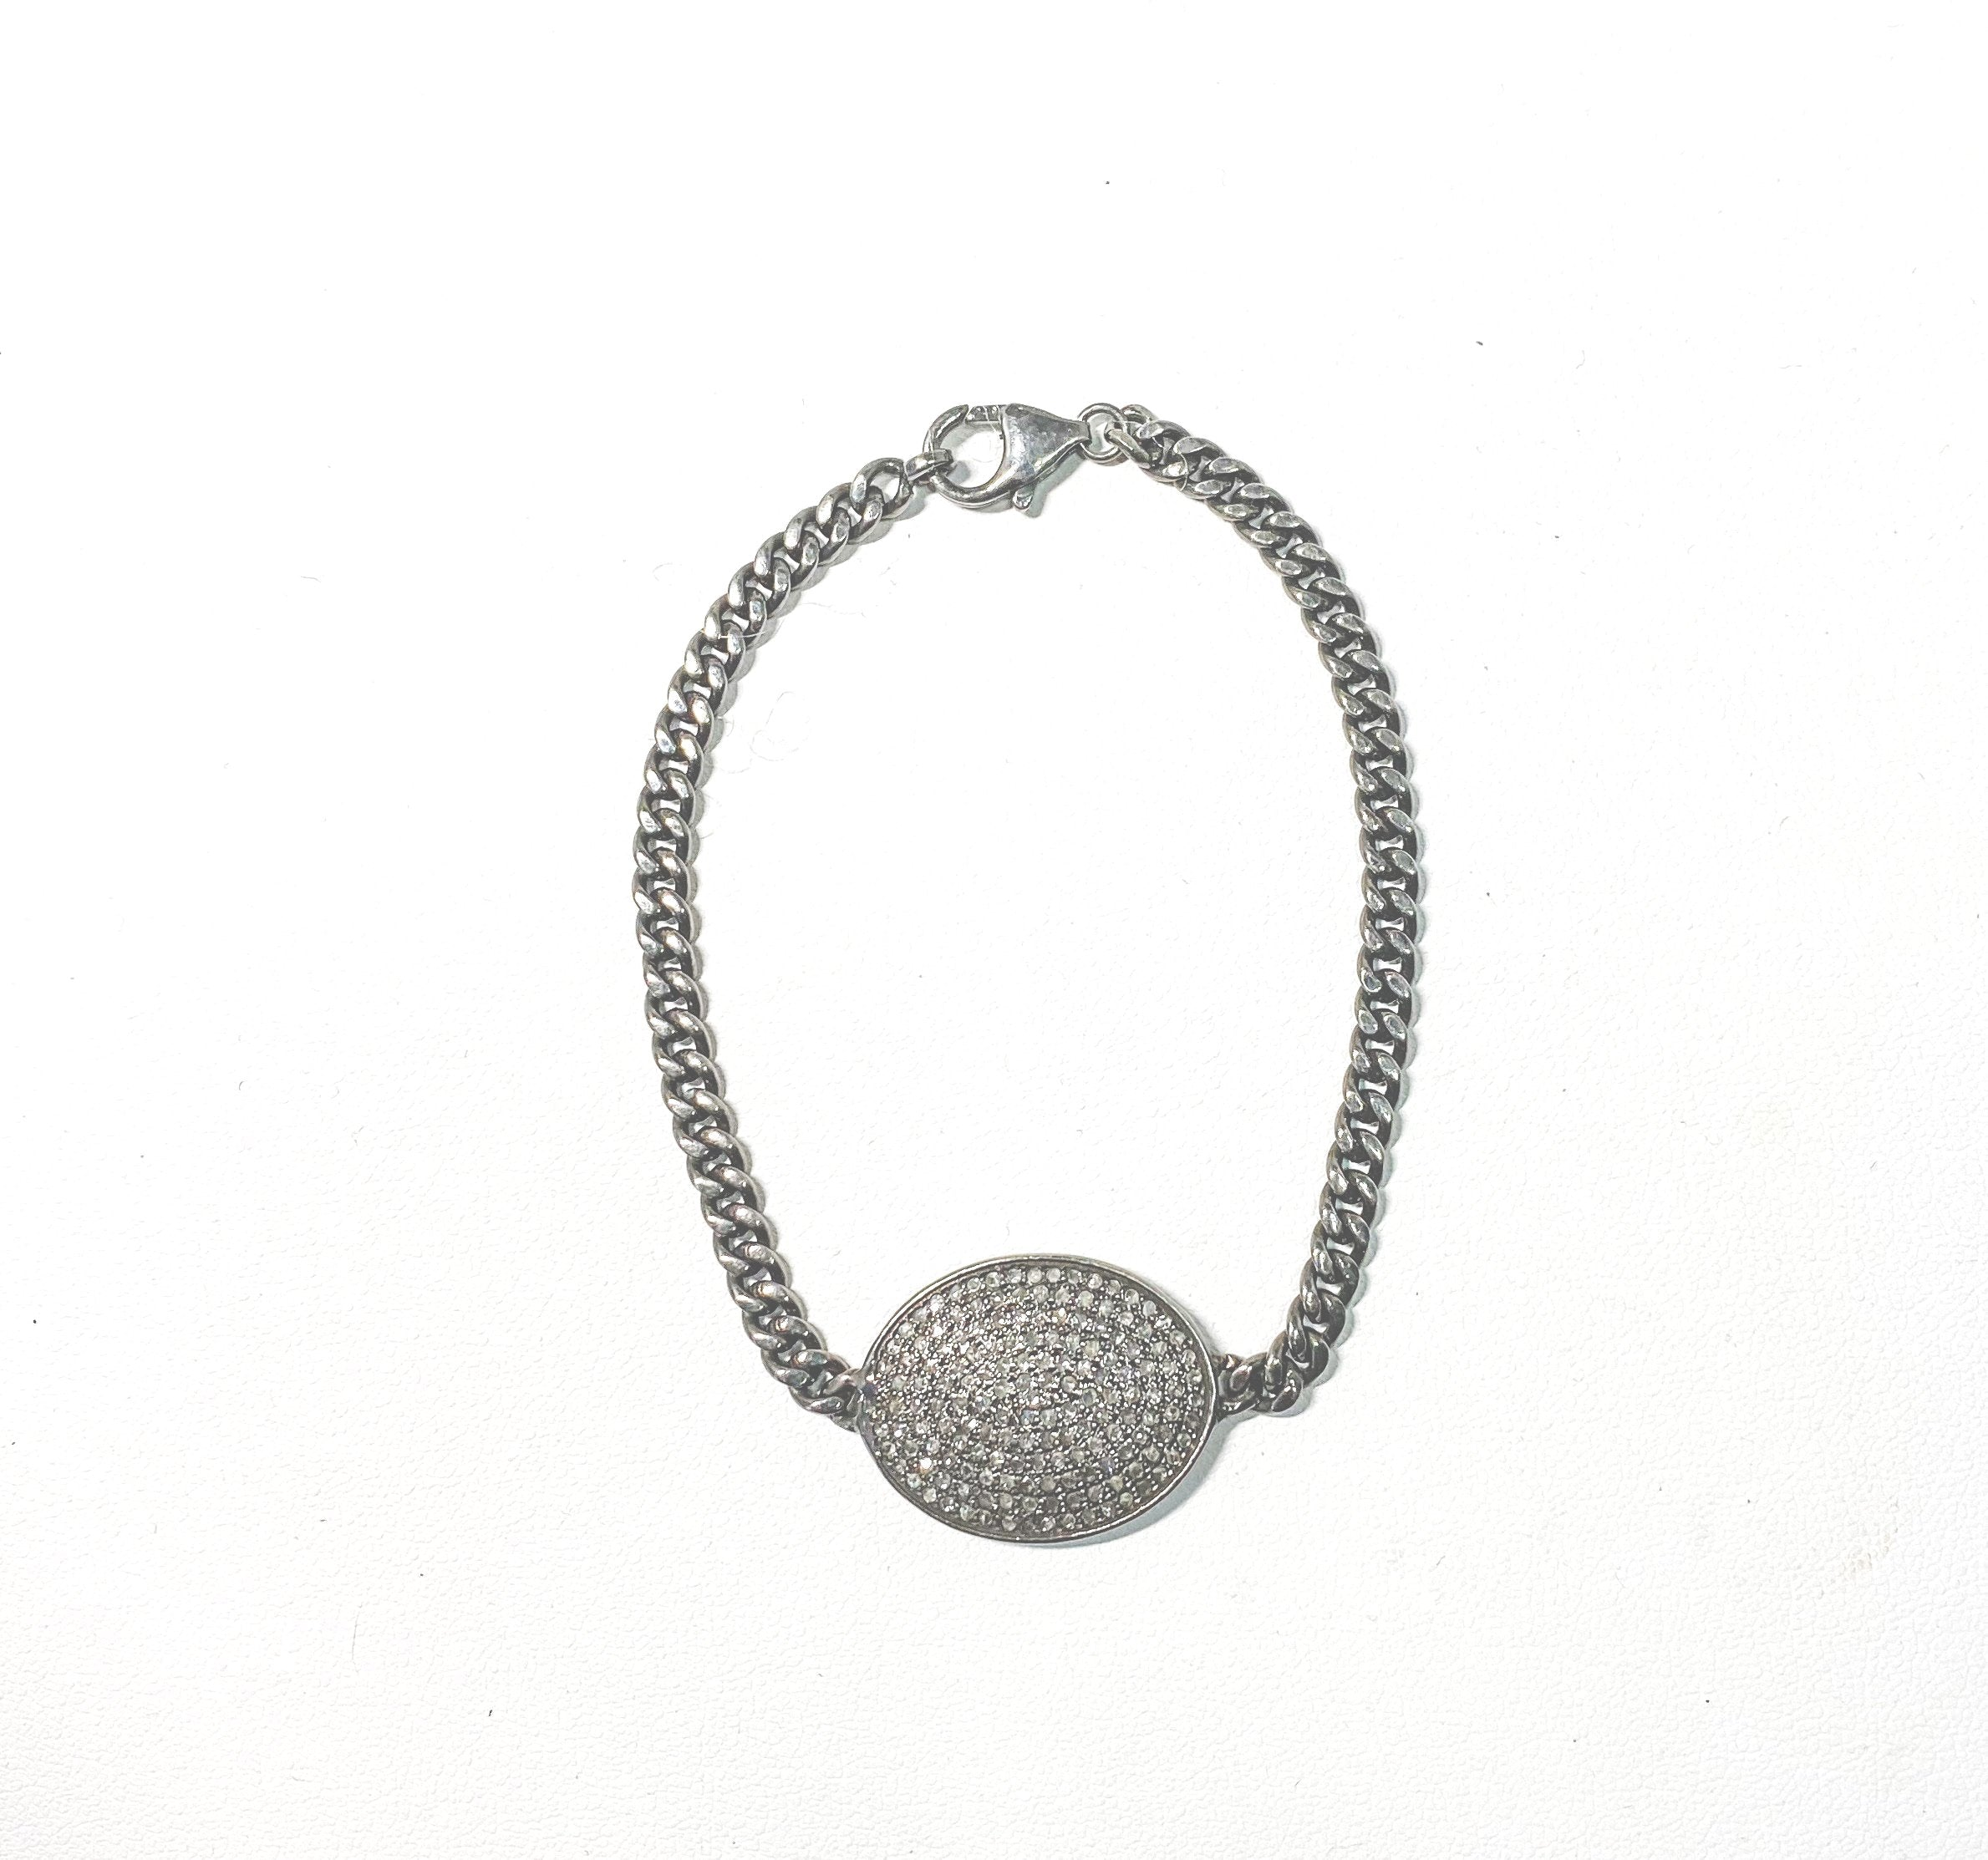 S.Row Designs Small Oval Pave Diamond Bracelet